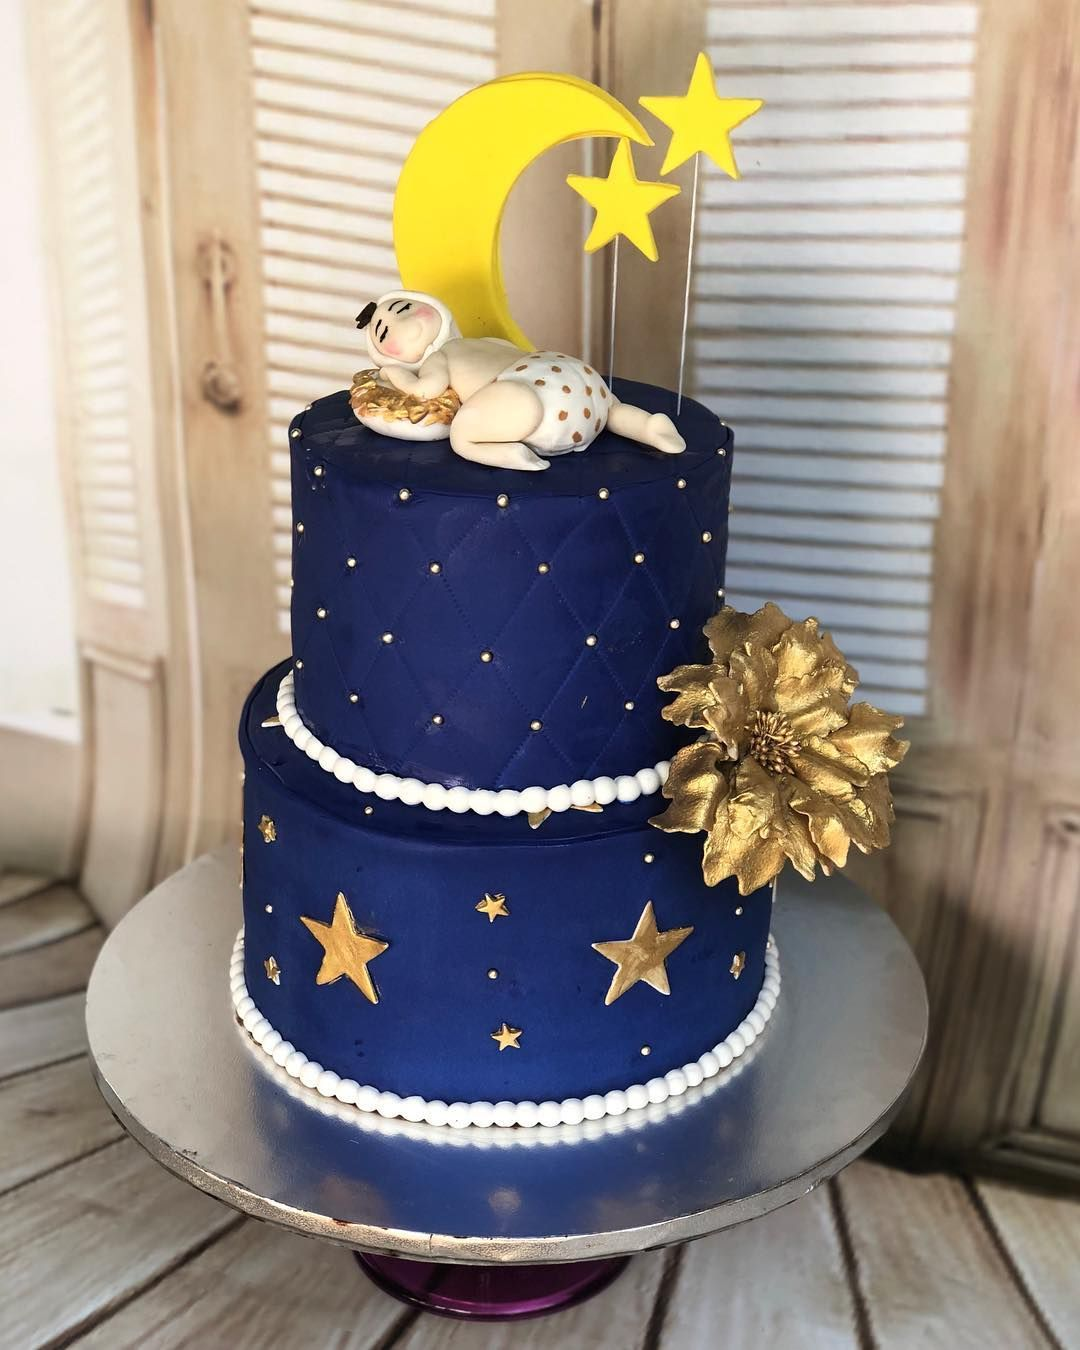 Twinkle Twinkle Little Star Cake For Baby Shower In Navy Gold